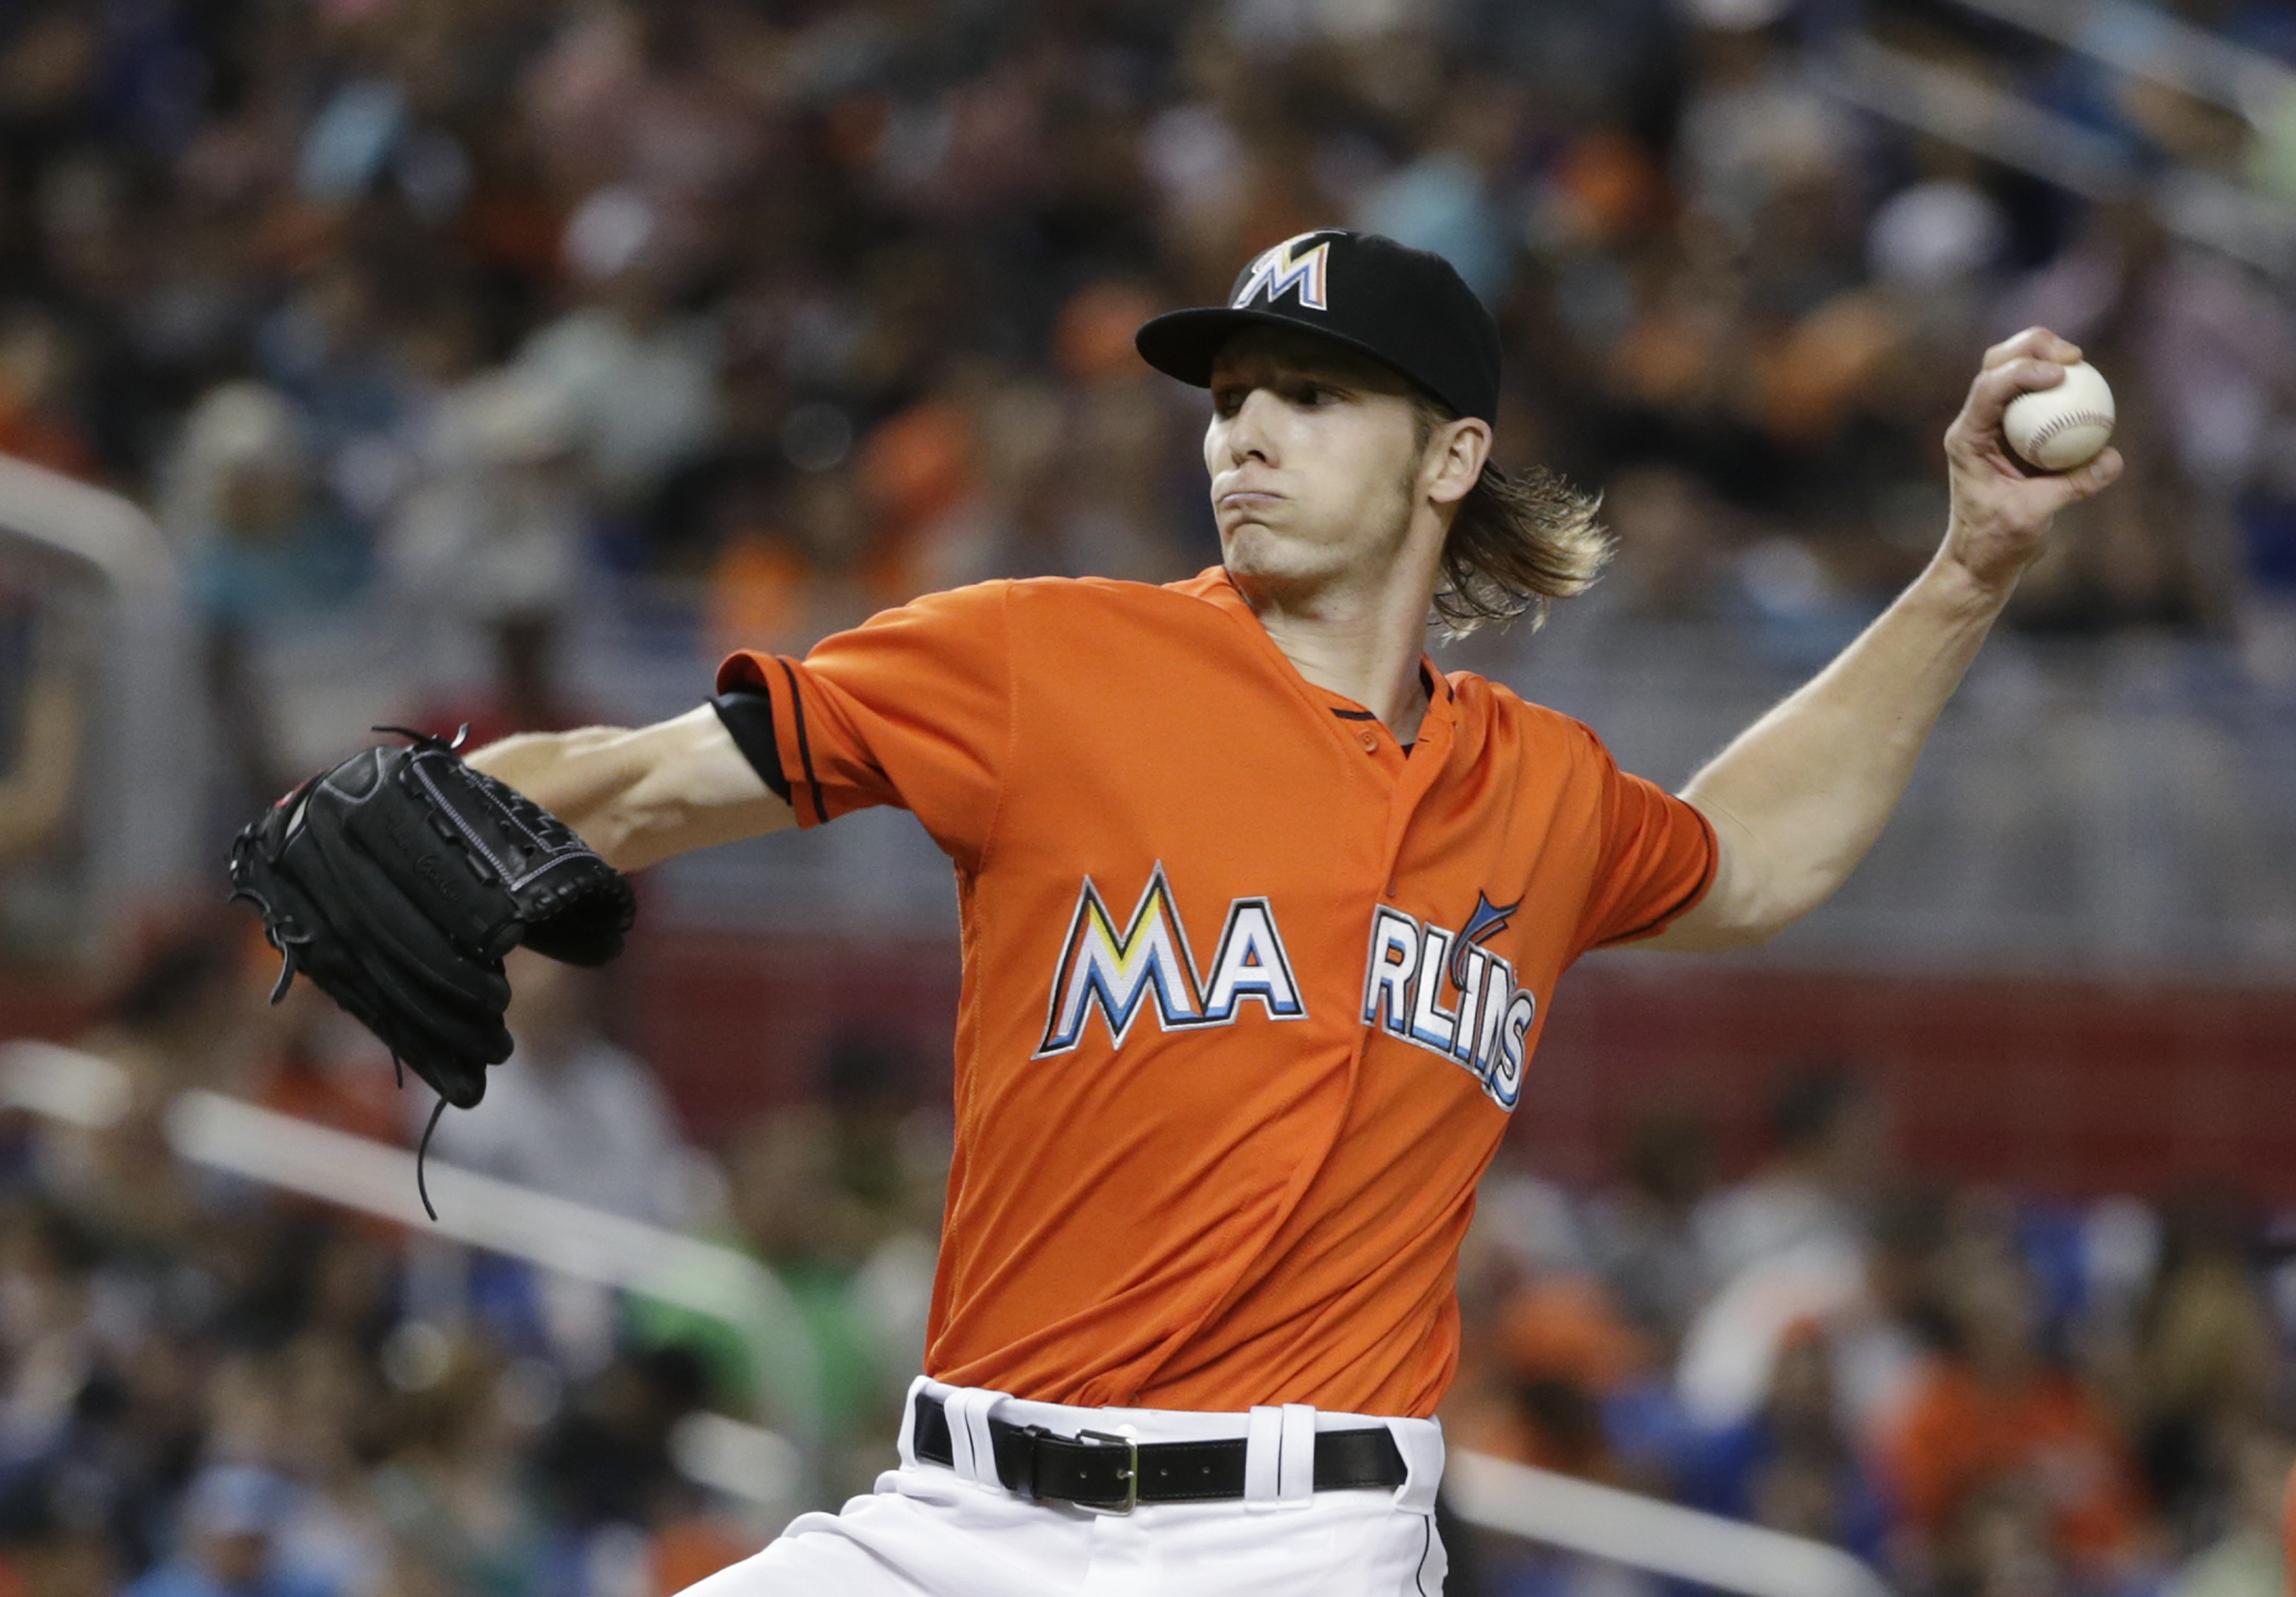 Miami Marlins' Adam Conley delivers a pitch during the first inning of a baseball game against the Washington Nationals, Sunday, May 22, 2016, in Miami. (AP Photo/Wilfredo Lee)